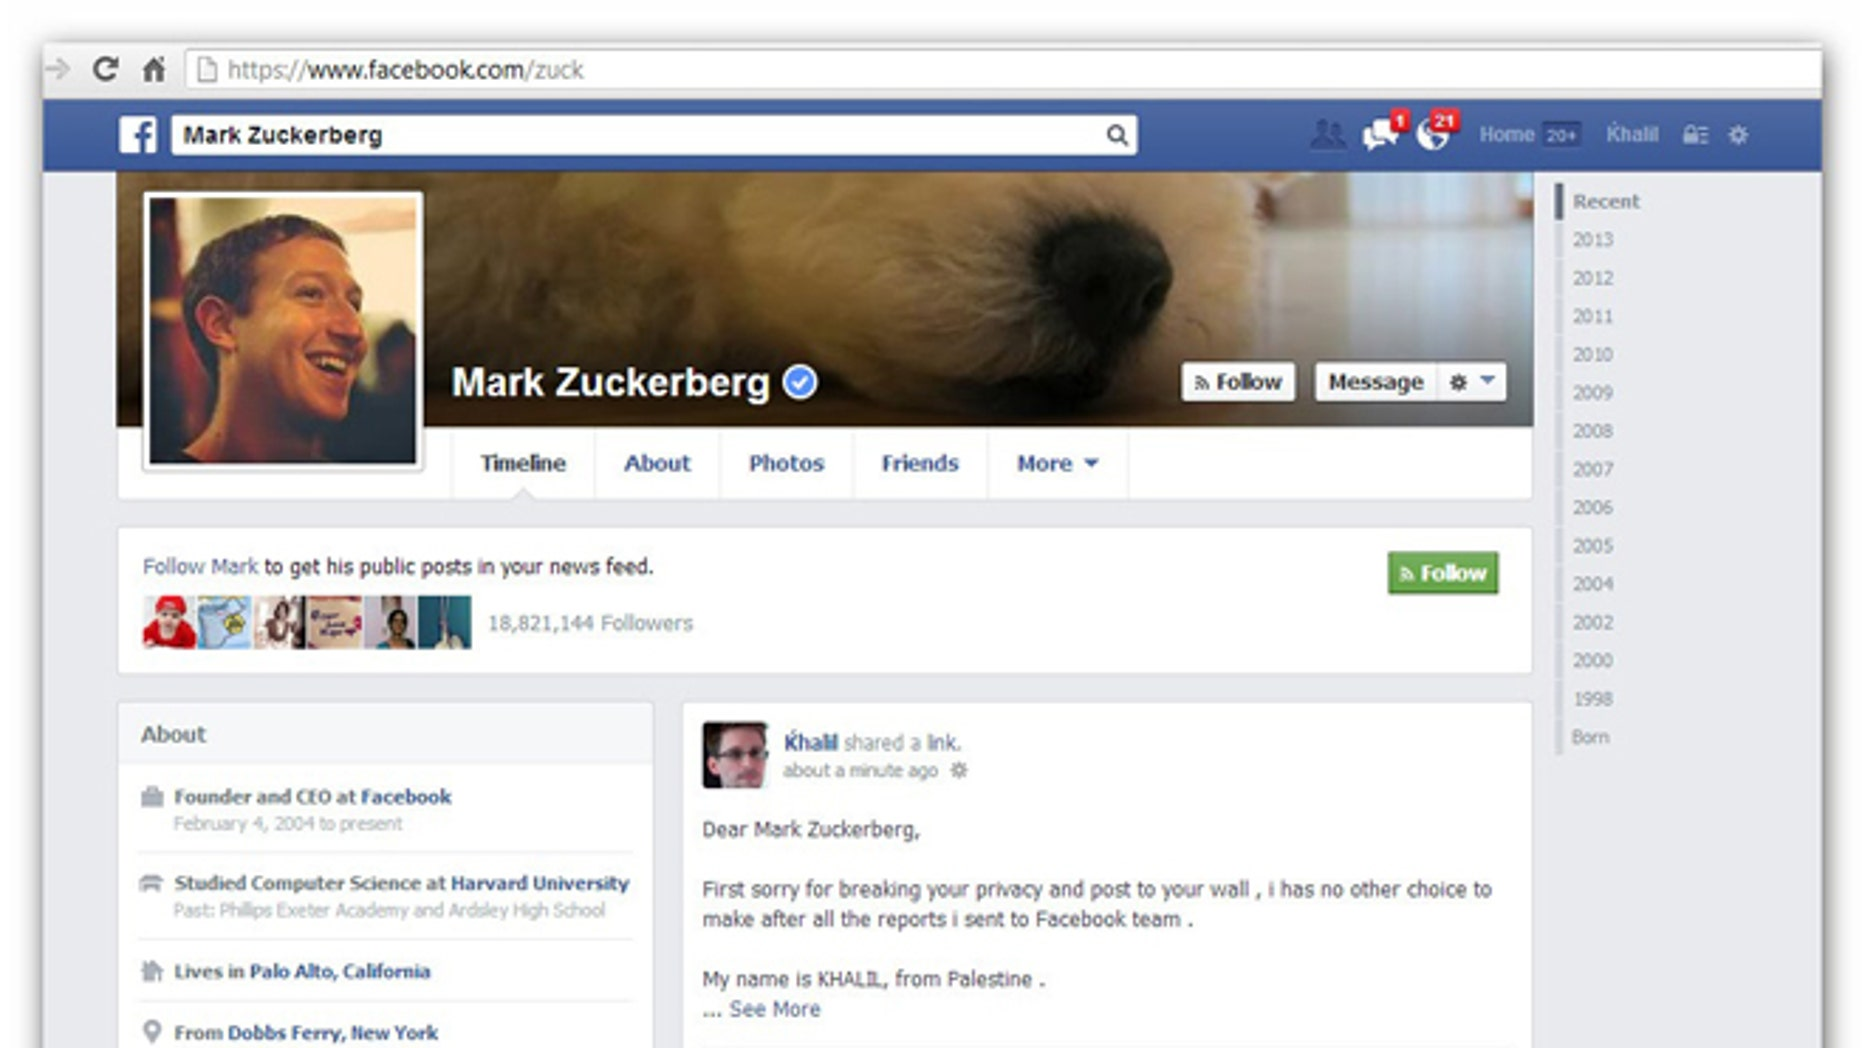 Security researcher Khalil Shreateh posted a bug he discovered on Facebook CEO Mark Zuckerberg's wall after administrators ignored him twice.